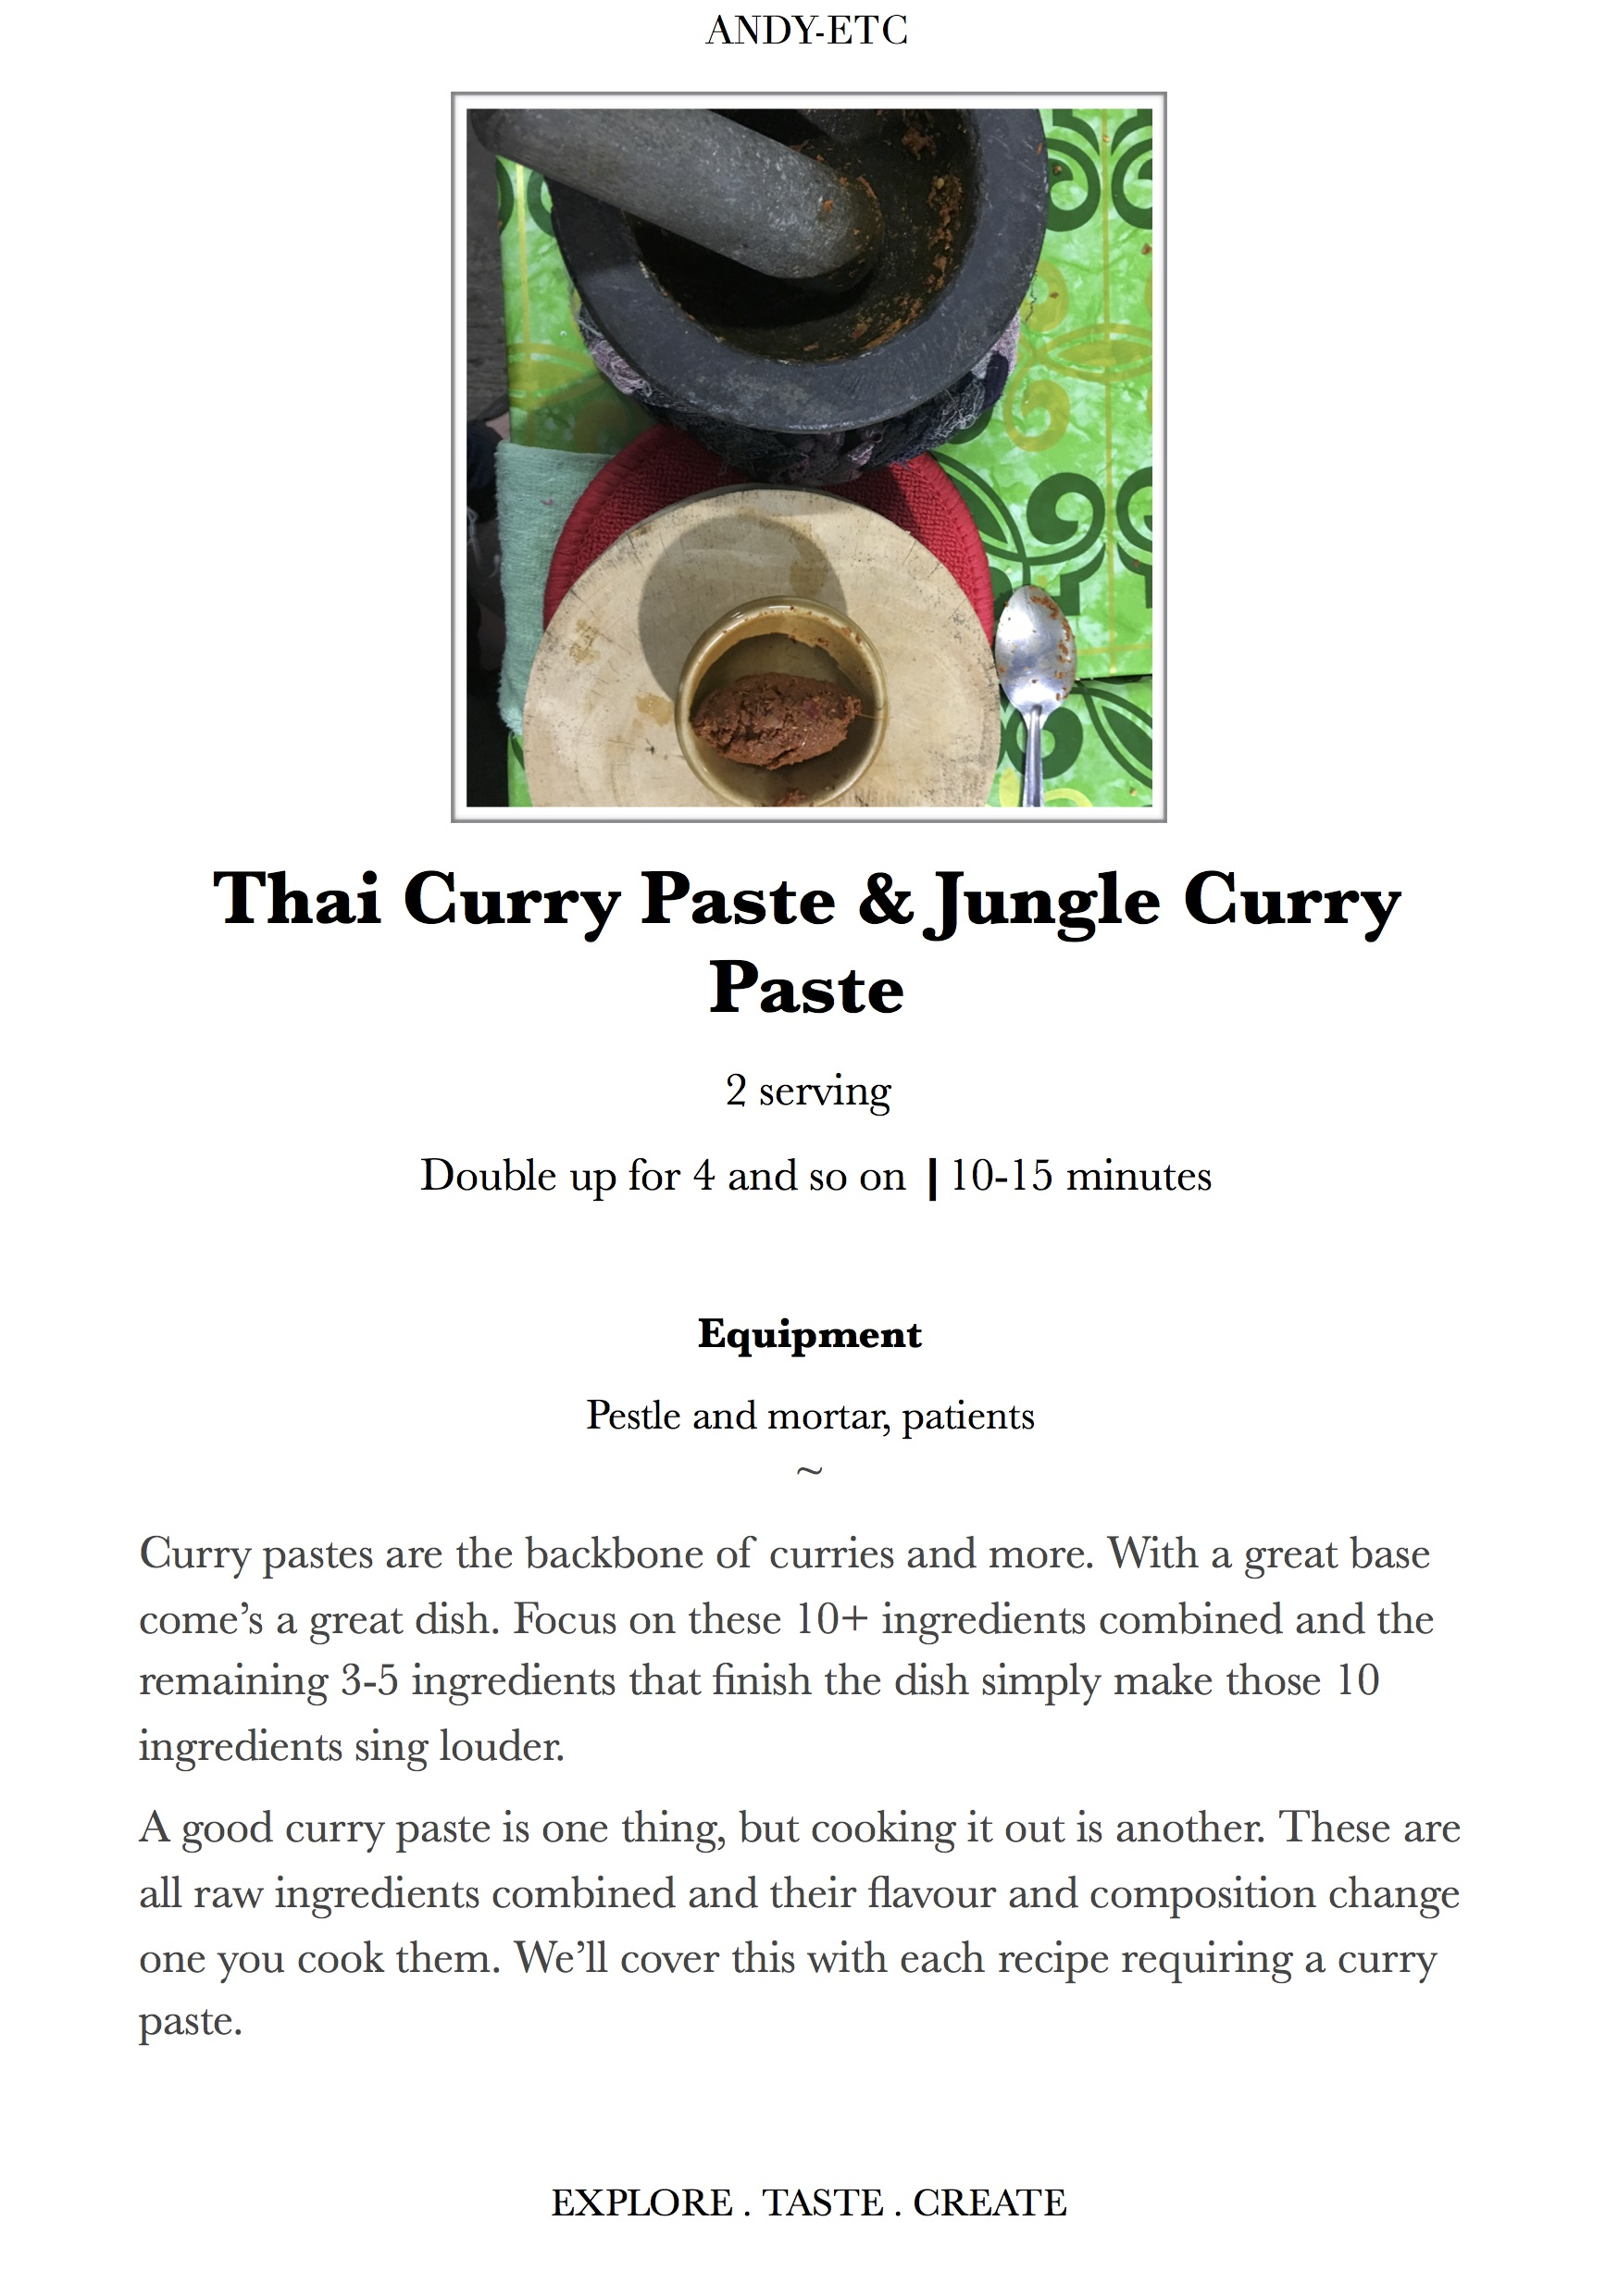 Thai Curry Paste &Jungle Curry Paste Andy ETC  .jpg